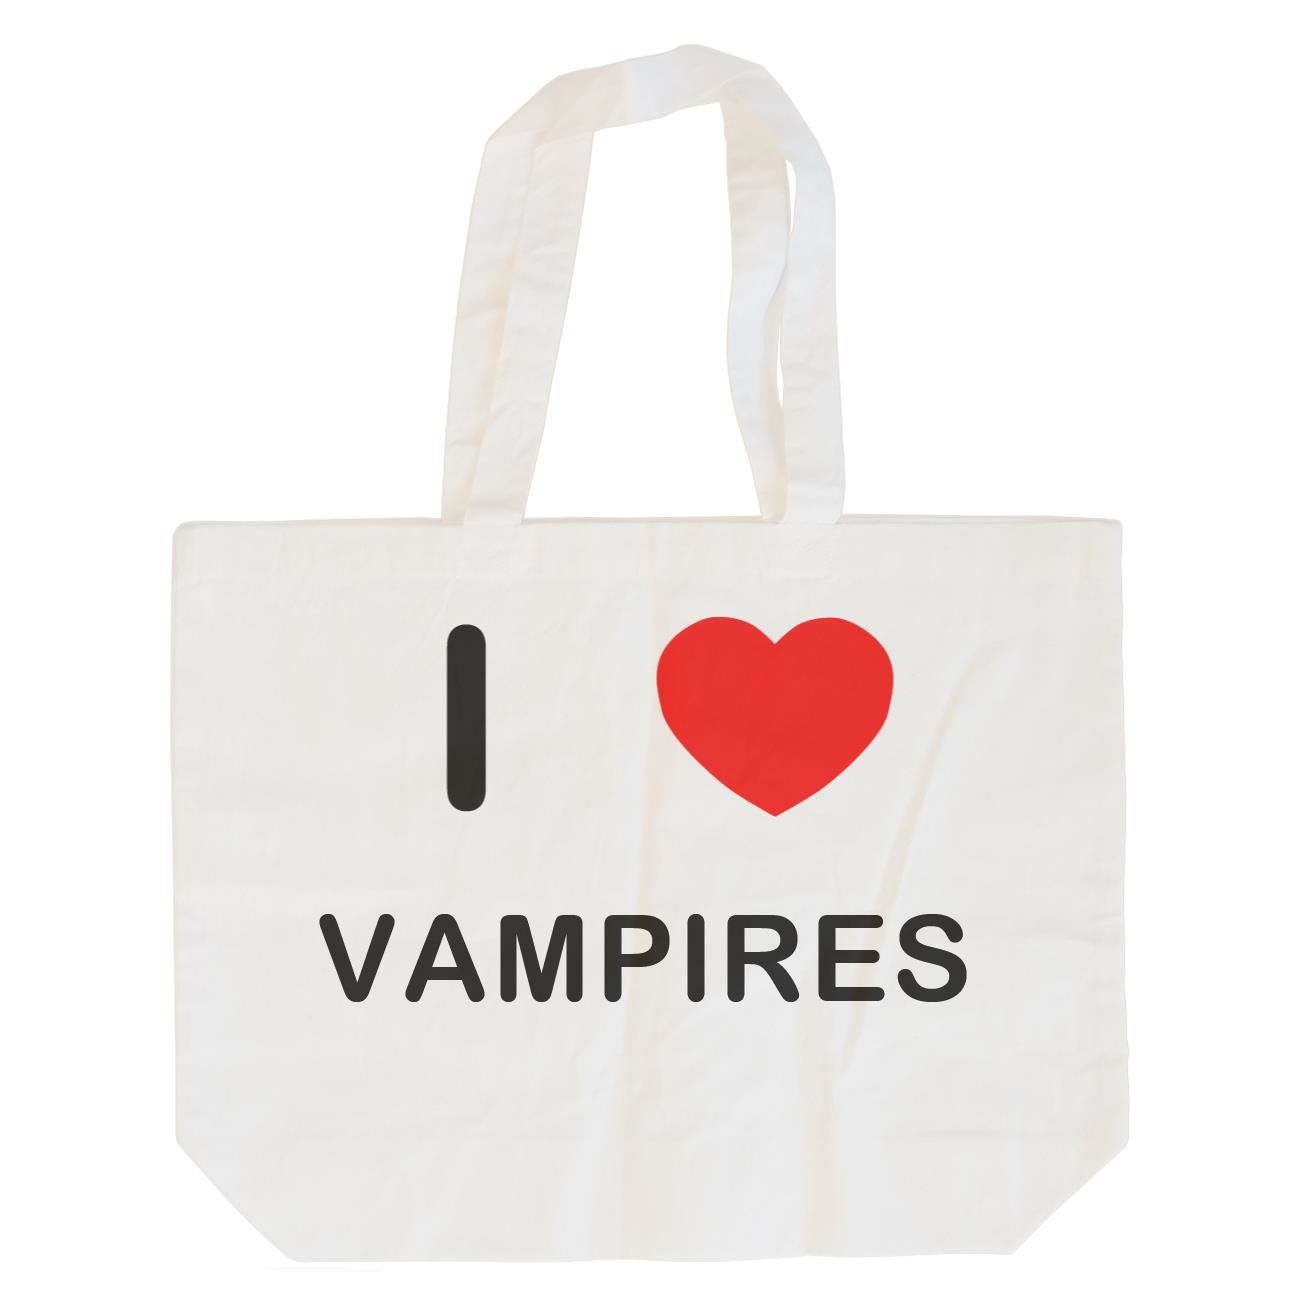 I Love Vampires - Cotton Bag | Size choice Tote, Shopper or Sling